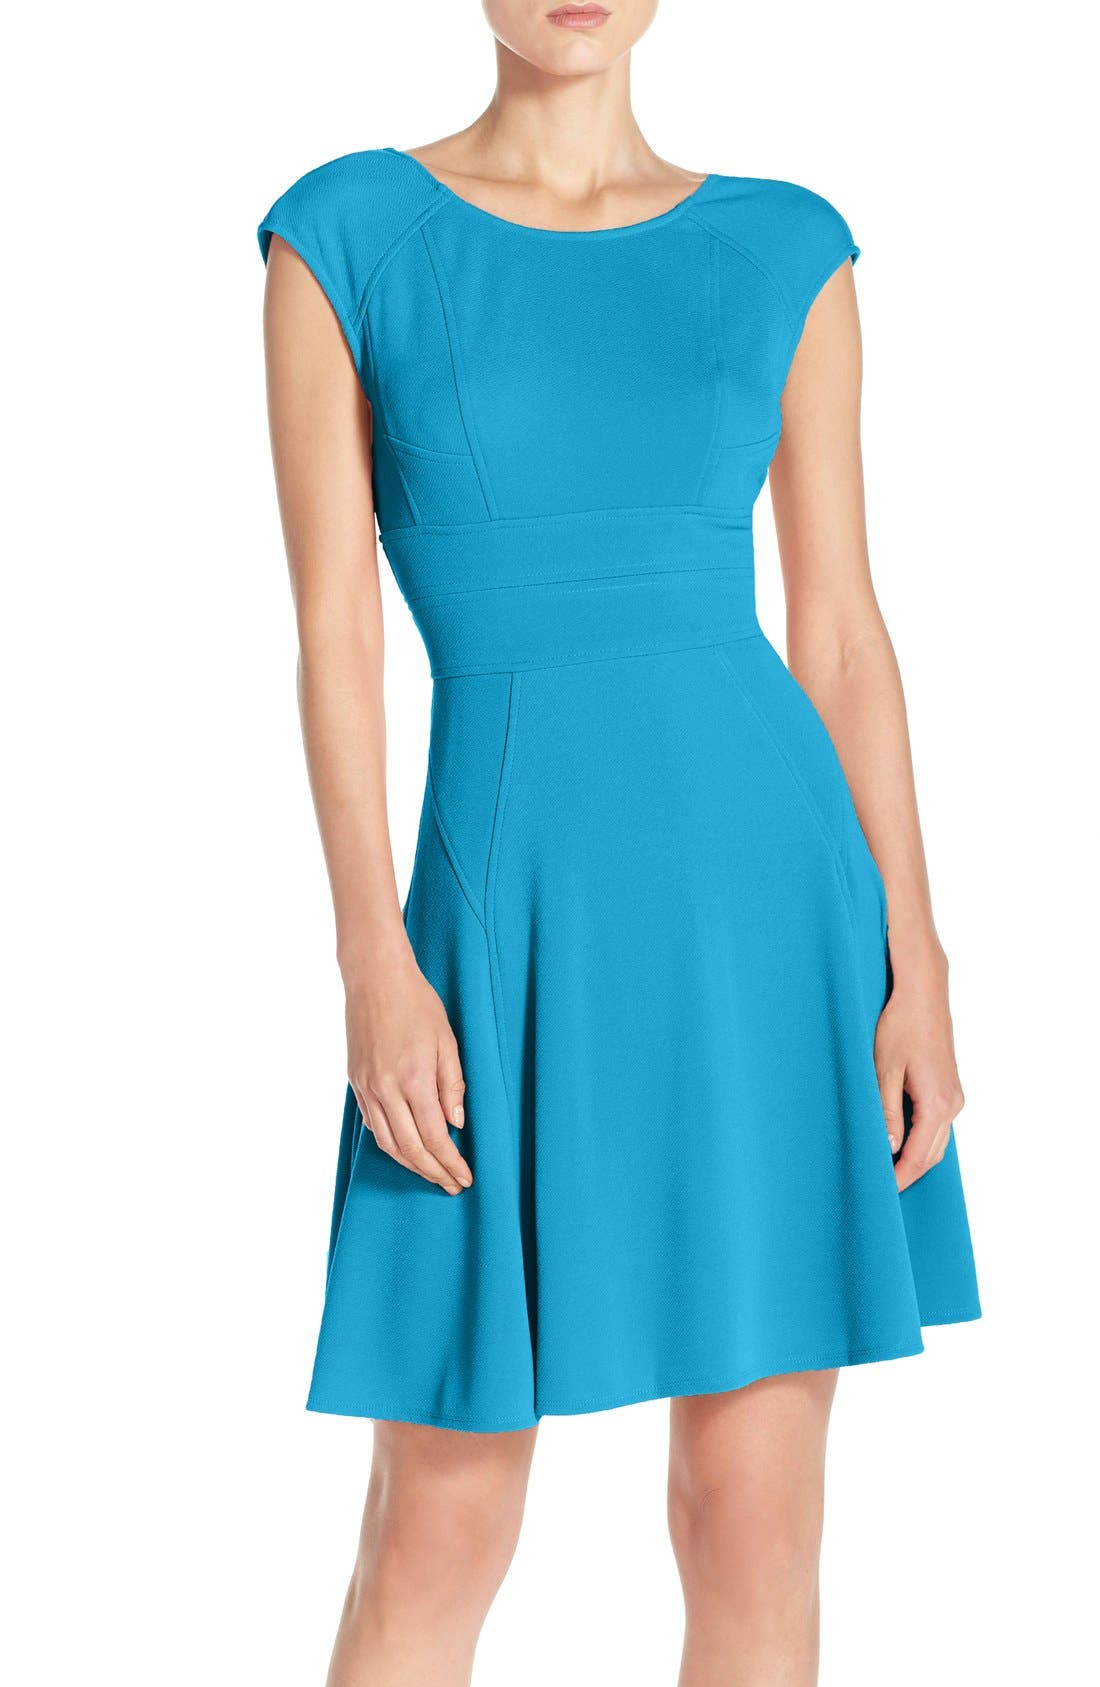 JULIA JORDAN Cap Sleeve Fit & Flare Dress